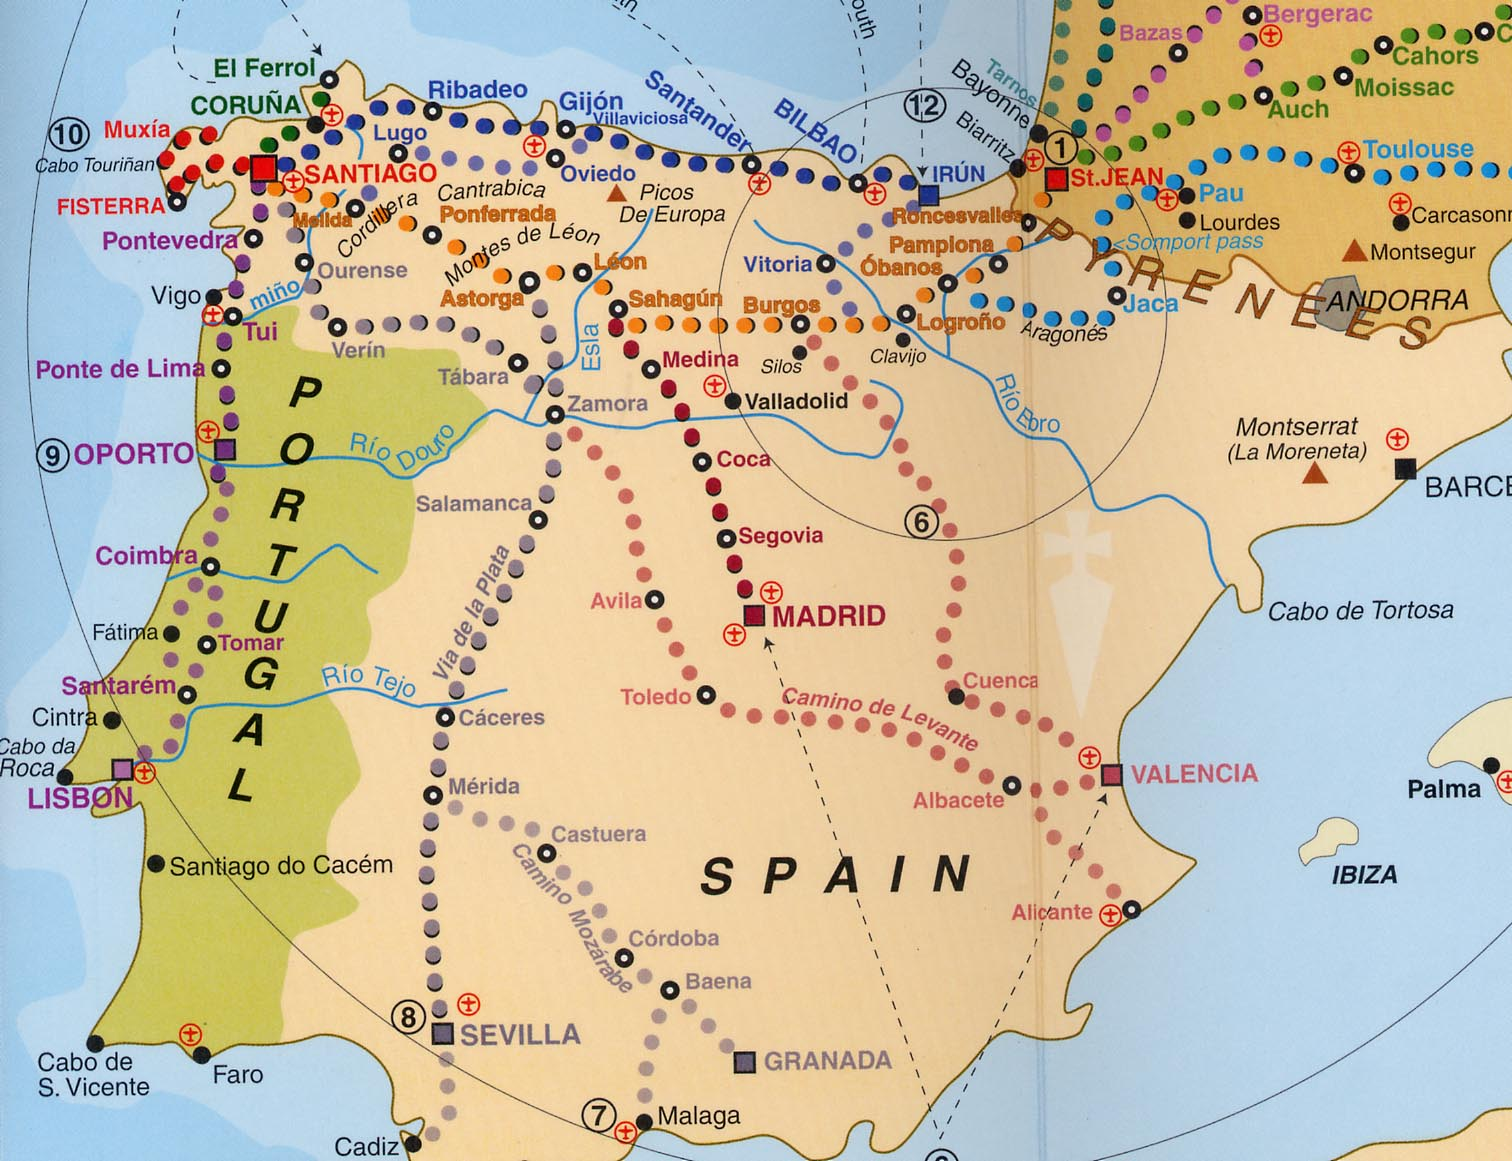 Johns Camino Route Maps - Portugal norte map